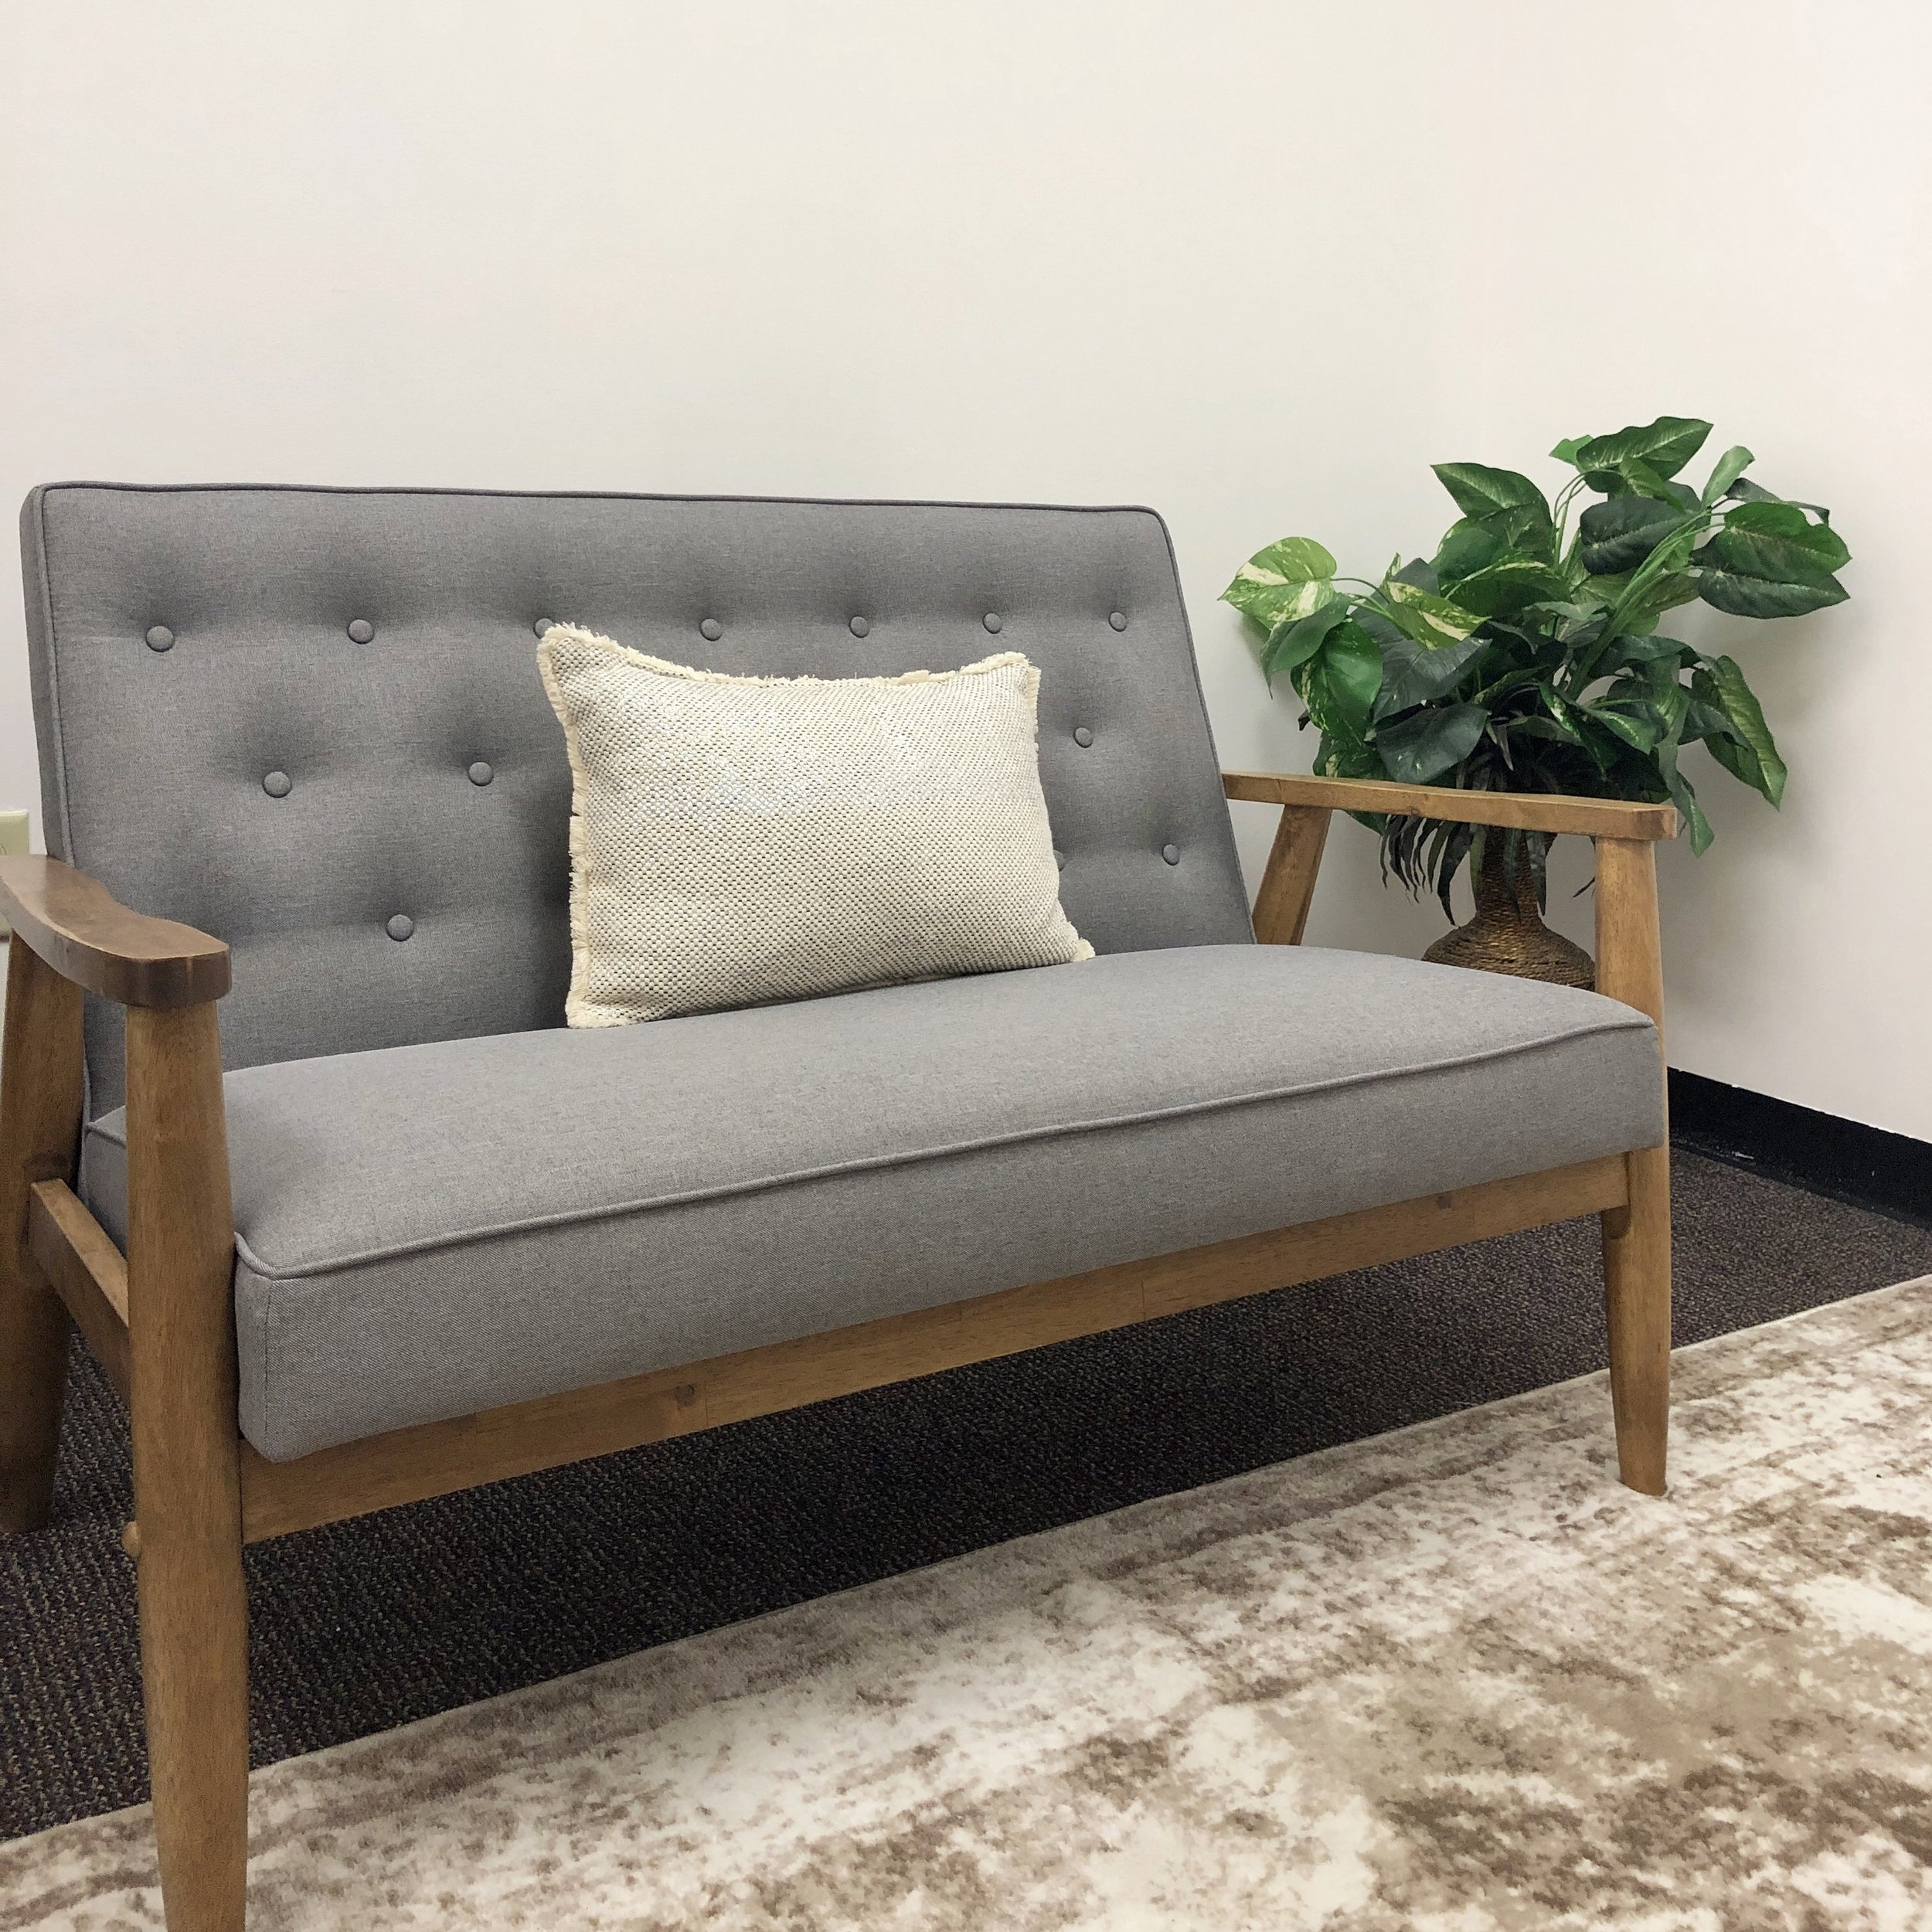 Our therapy office is clean, modern, cozy, and minimal.